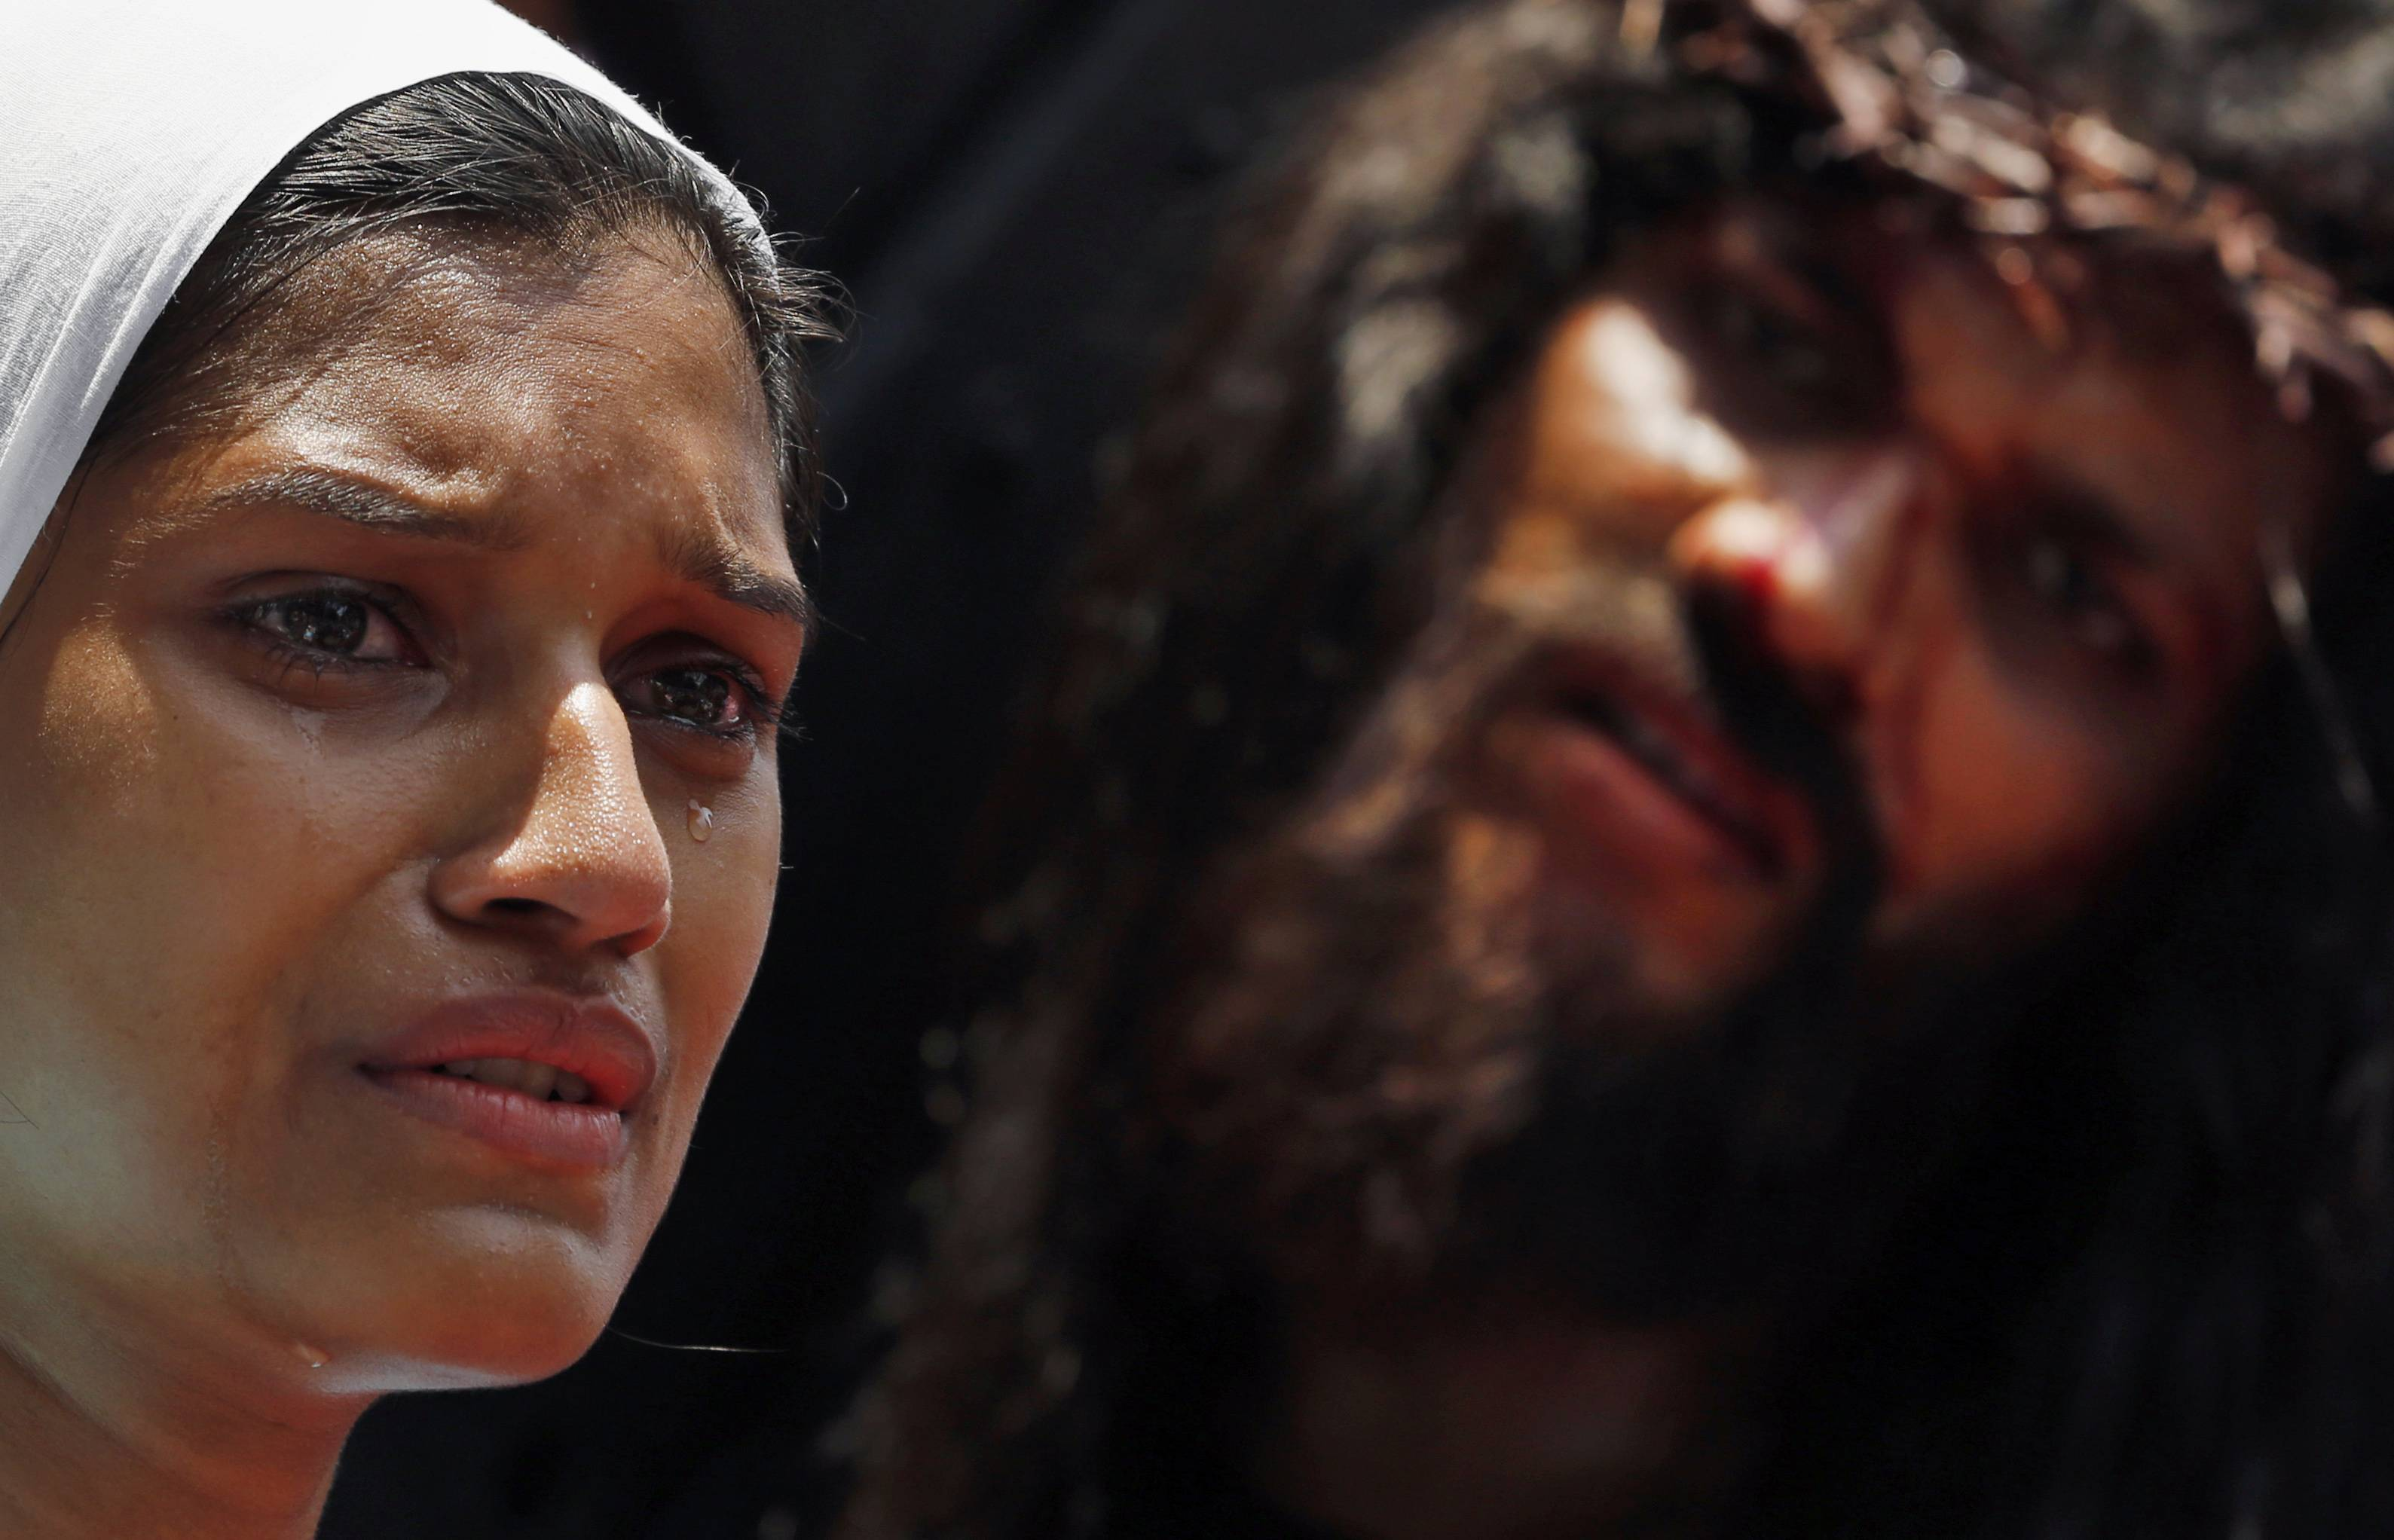 Indian Christian devotees re-enact the crucifixion of Jesus Christ to mark Good Friday in Mumbai, India.